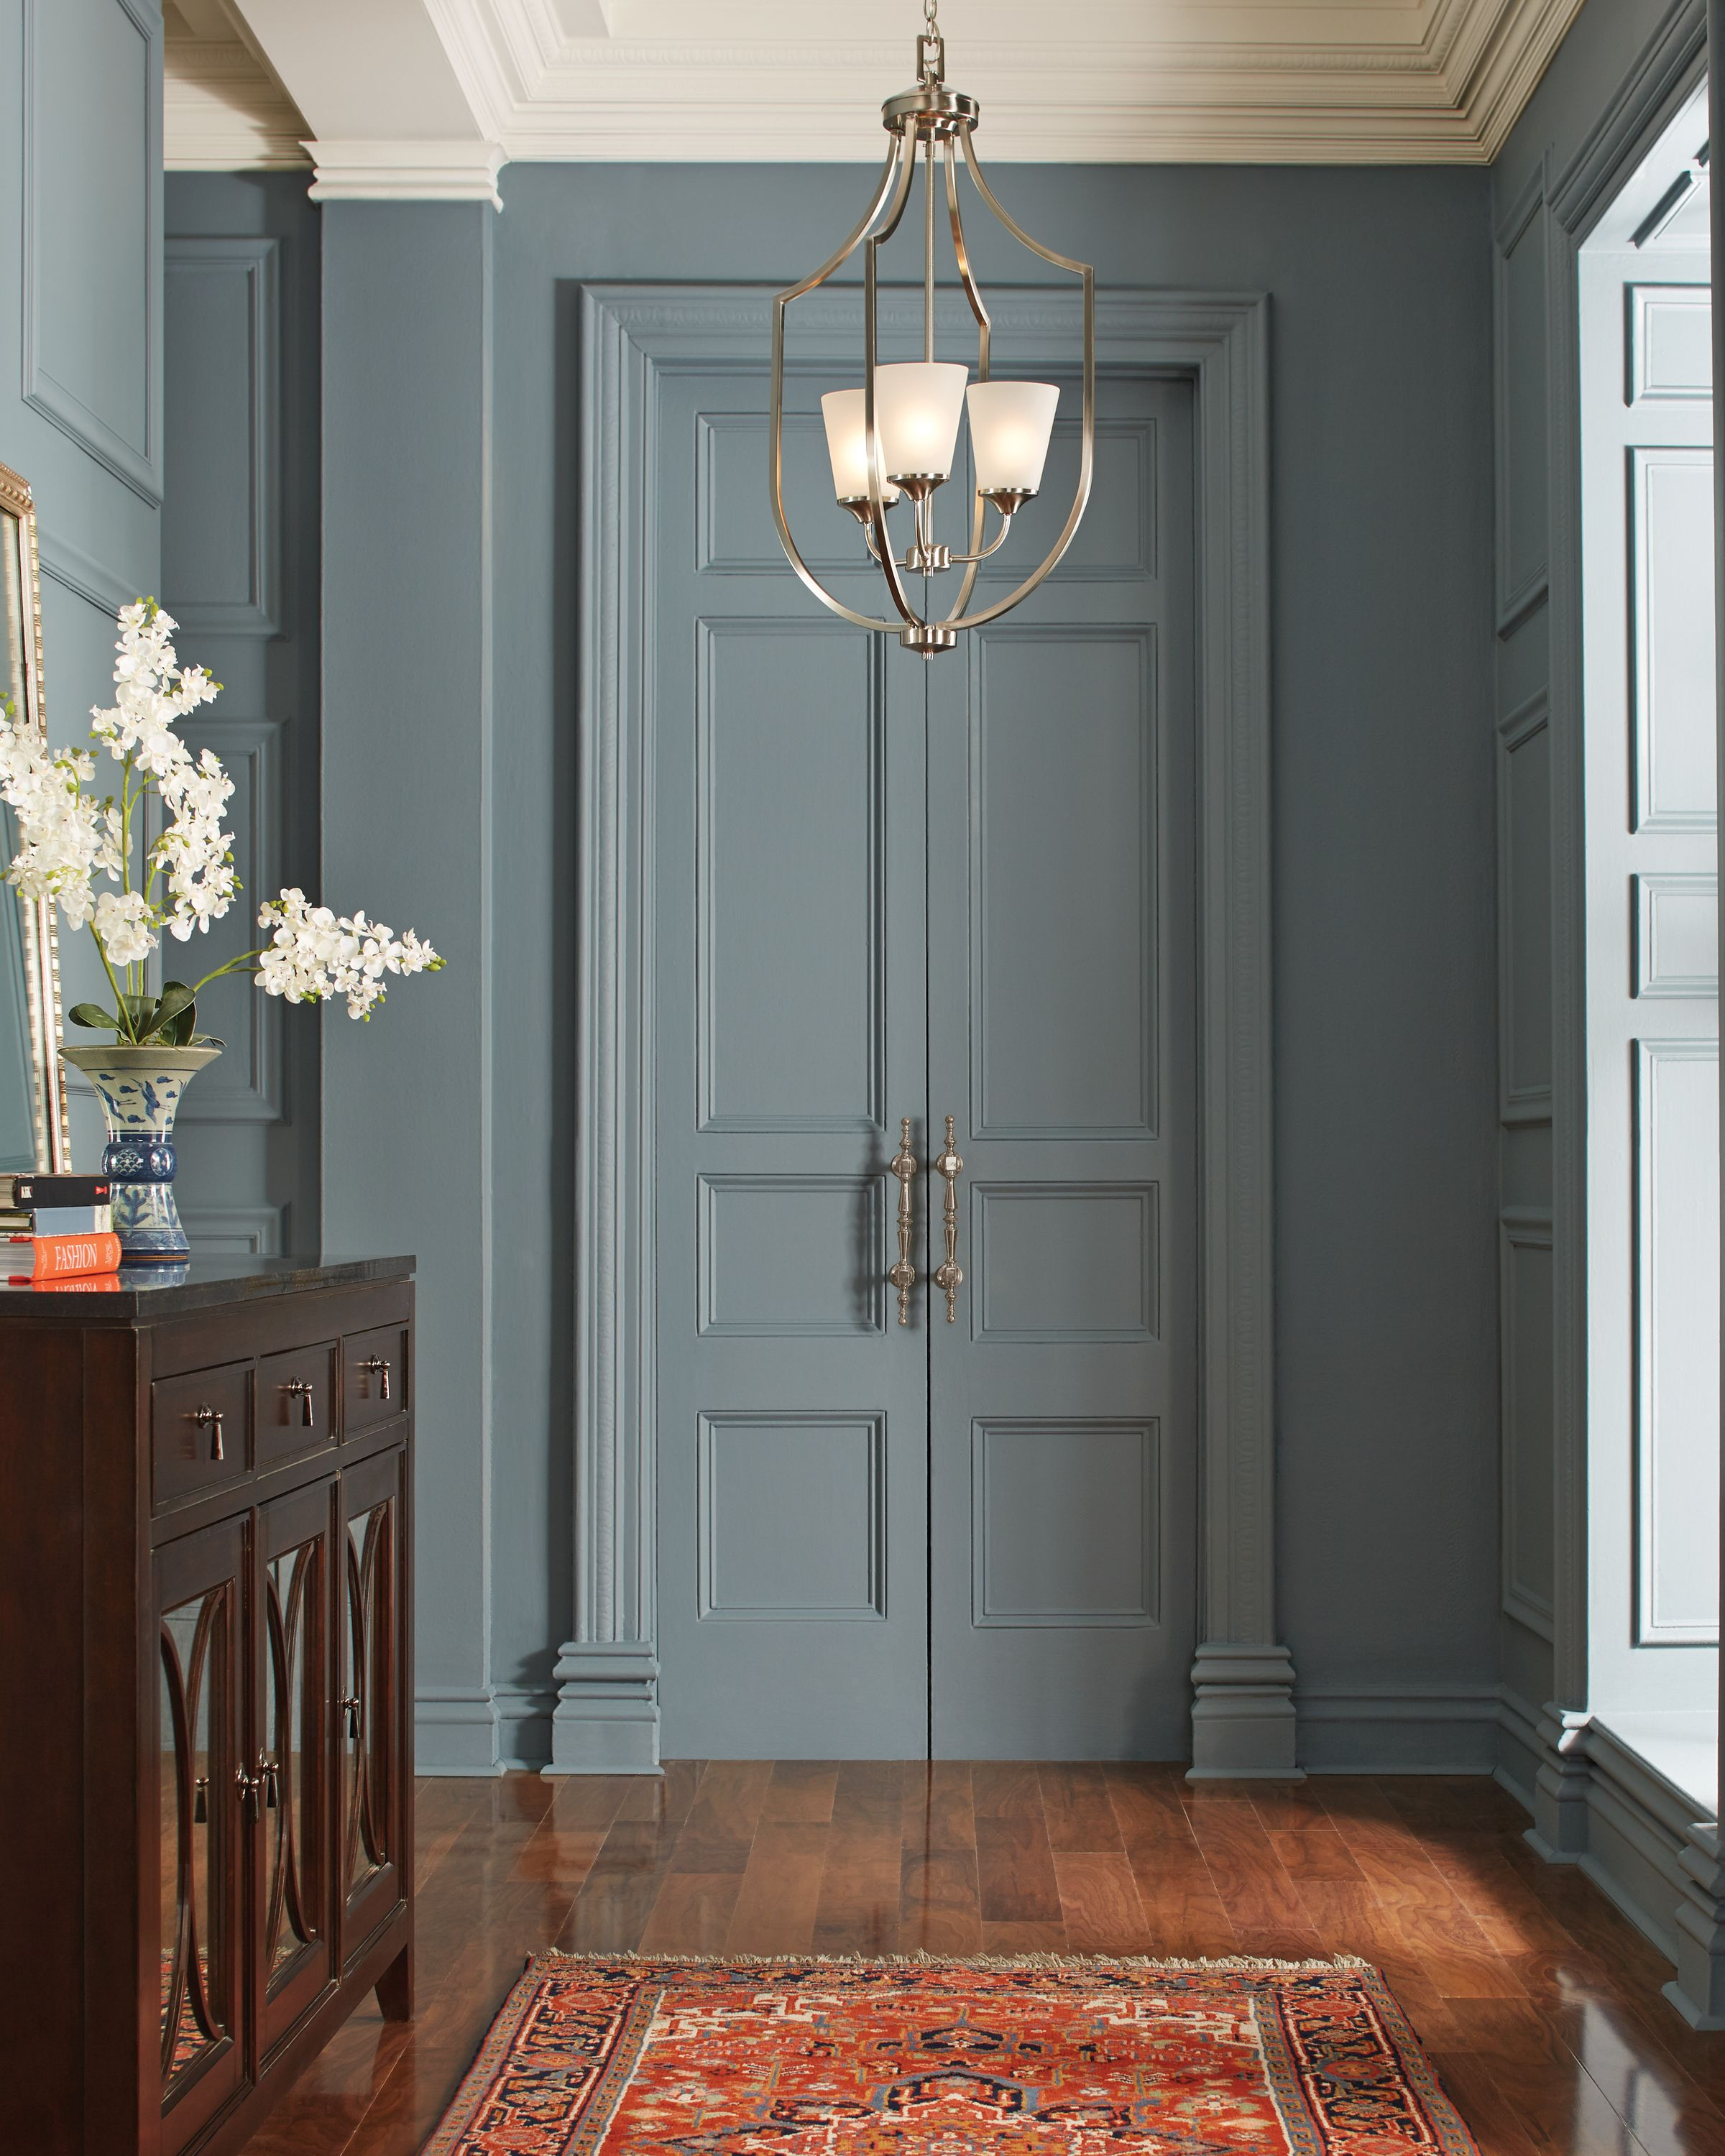 Transitional Foyer Hallway: Elegant Long Arms Create Symmetry In The Transitional